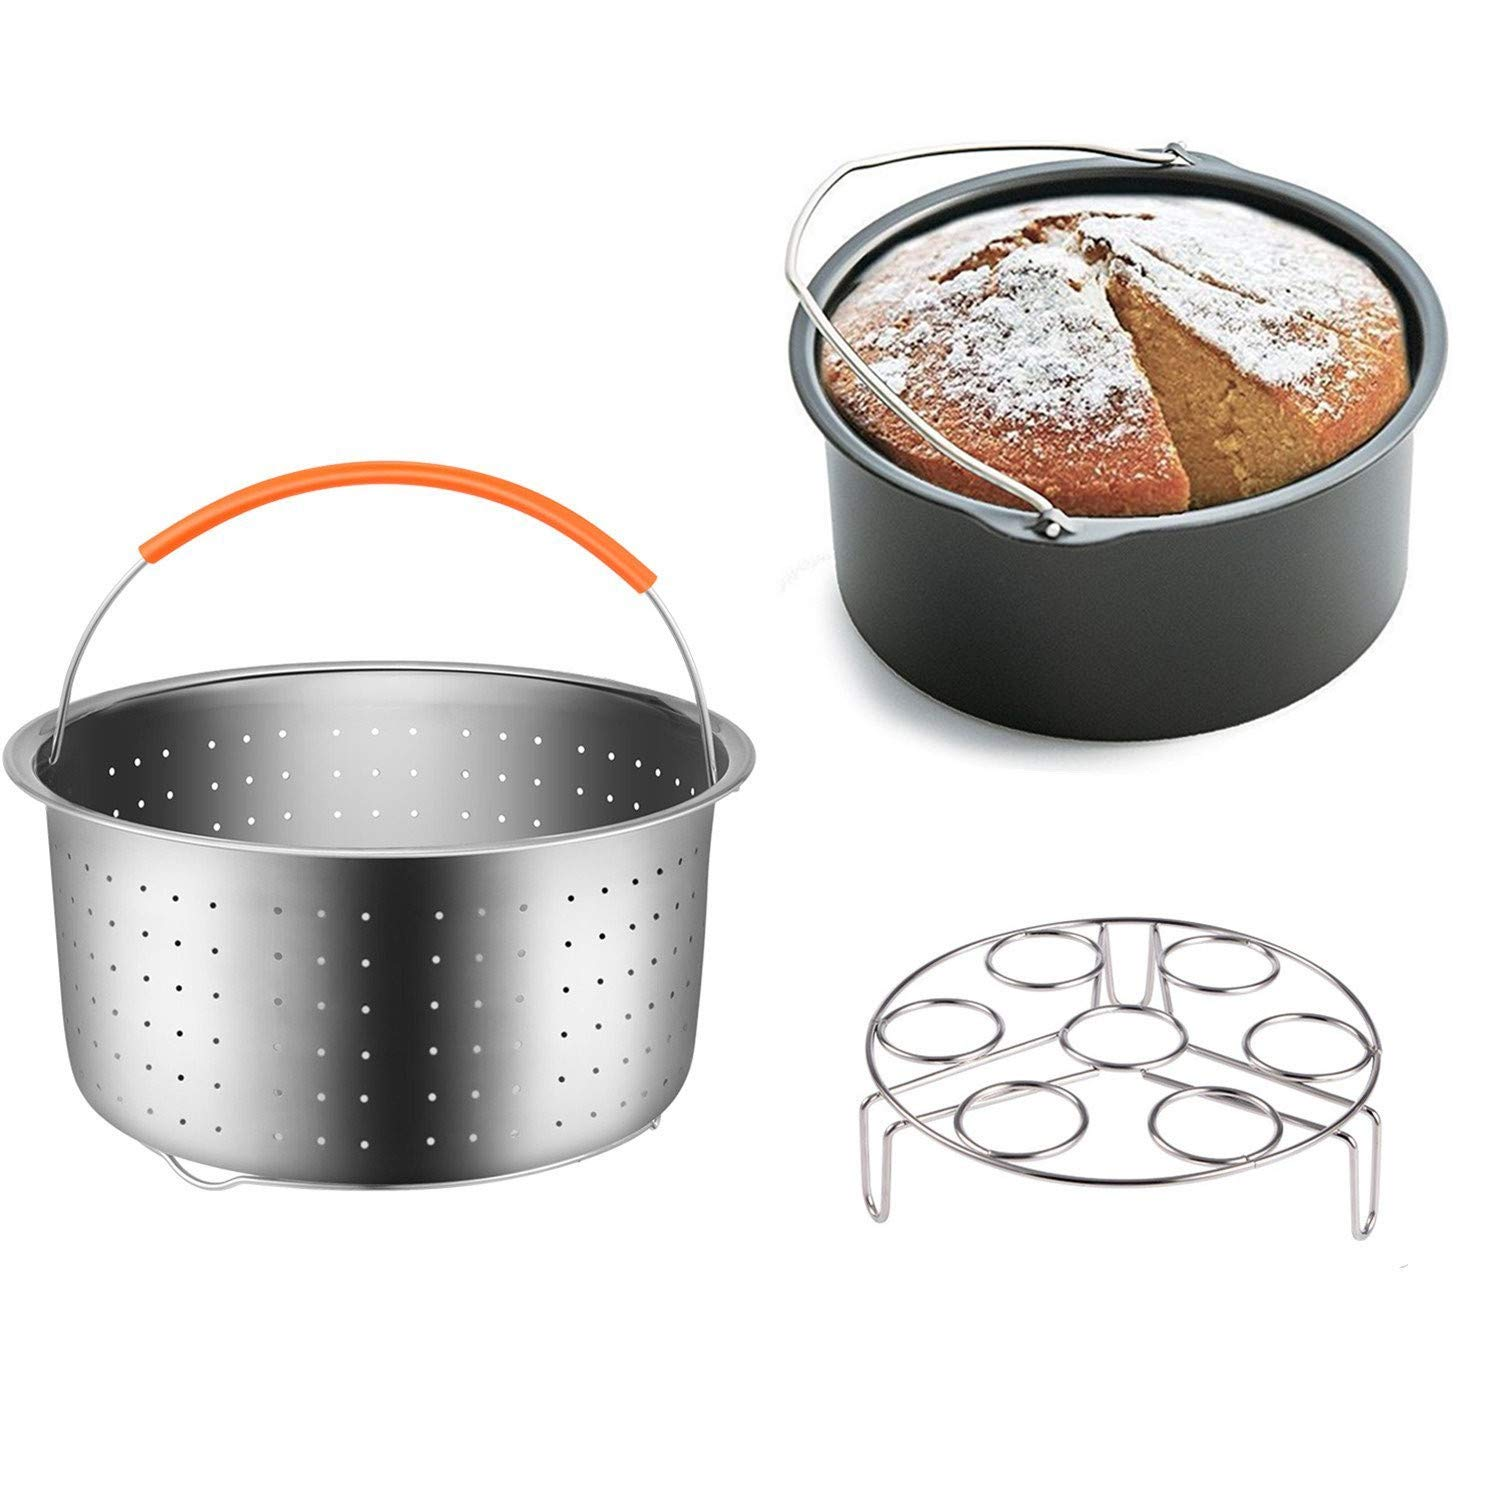 Set of 3 Instant Pot Accessories 6&8 Quart Steamer Basket, Fits Instant Pot Pressure Cooker Instant Pot DUO60, Great for Steaming Vegetables Fruits Eggs and Soup Food